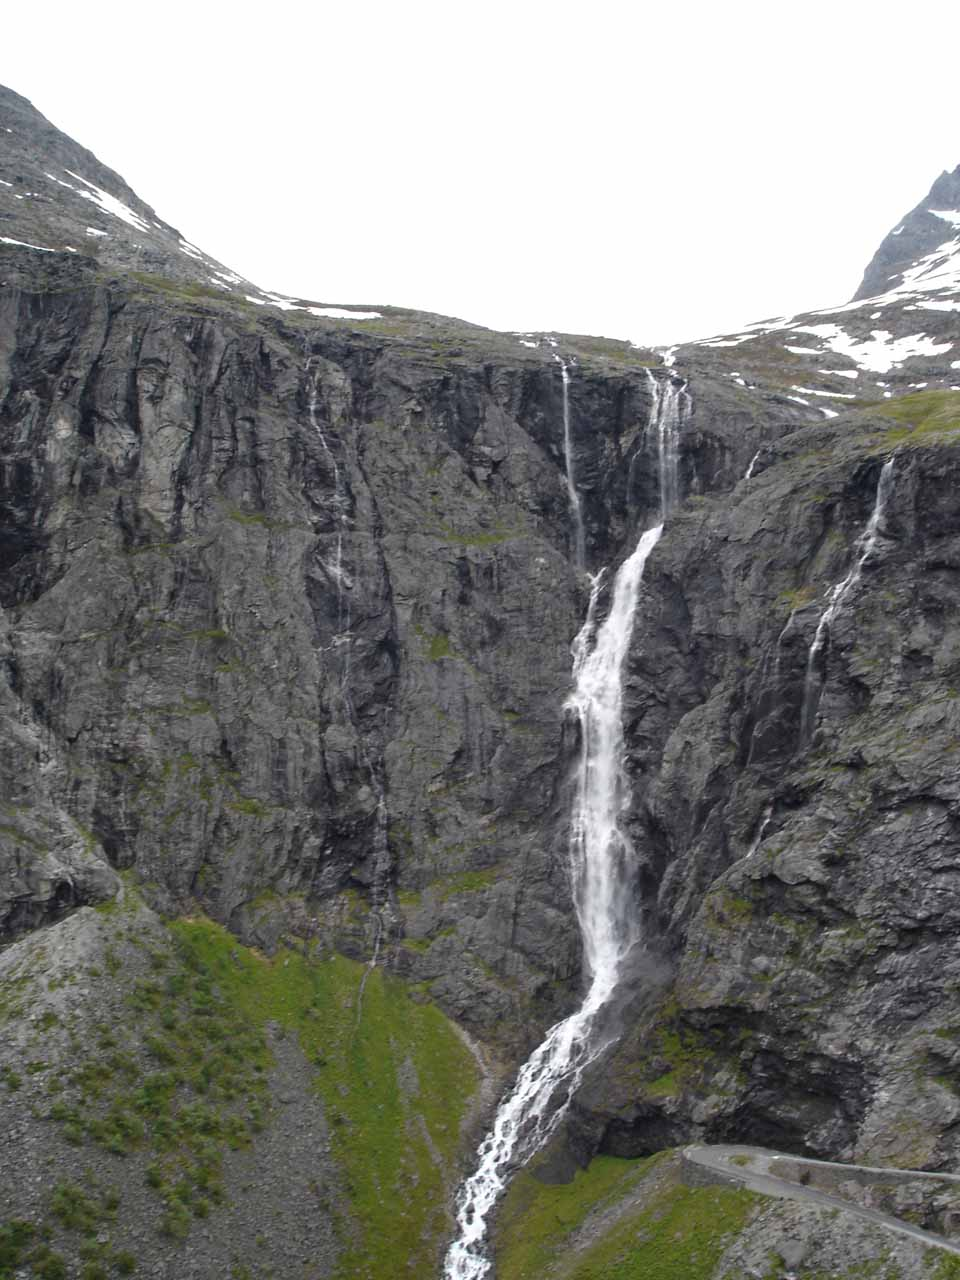 Now we were high enough on Trollstigen to feel like we were at eye level with the top of Tverrdalsfossen